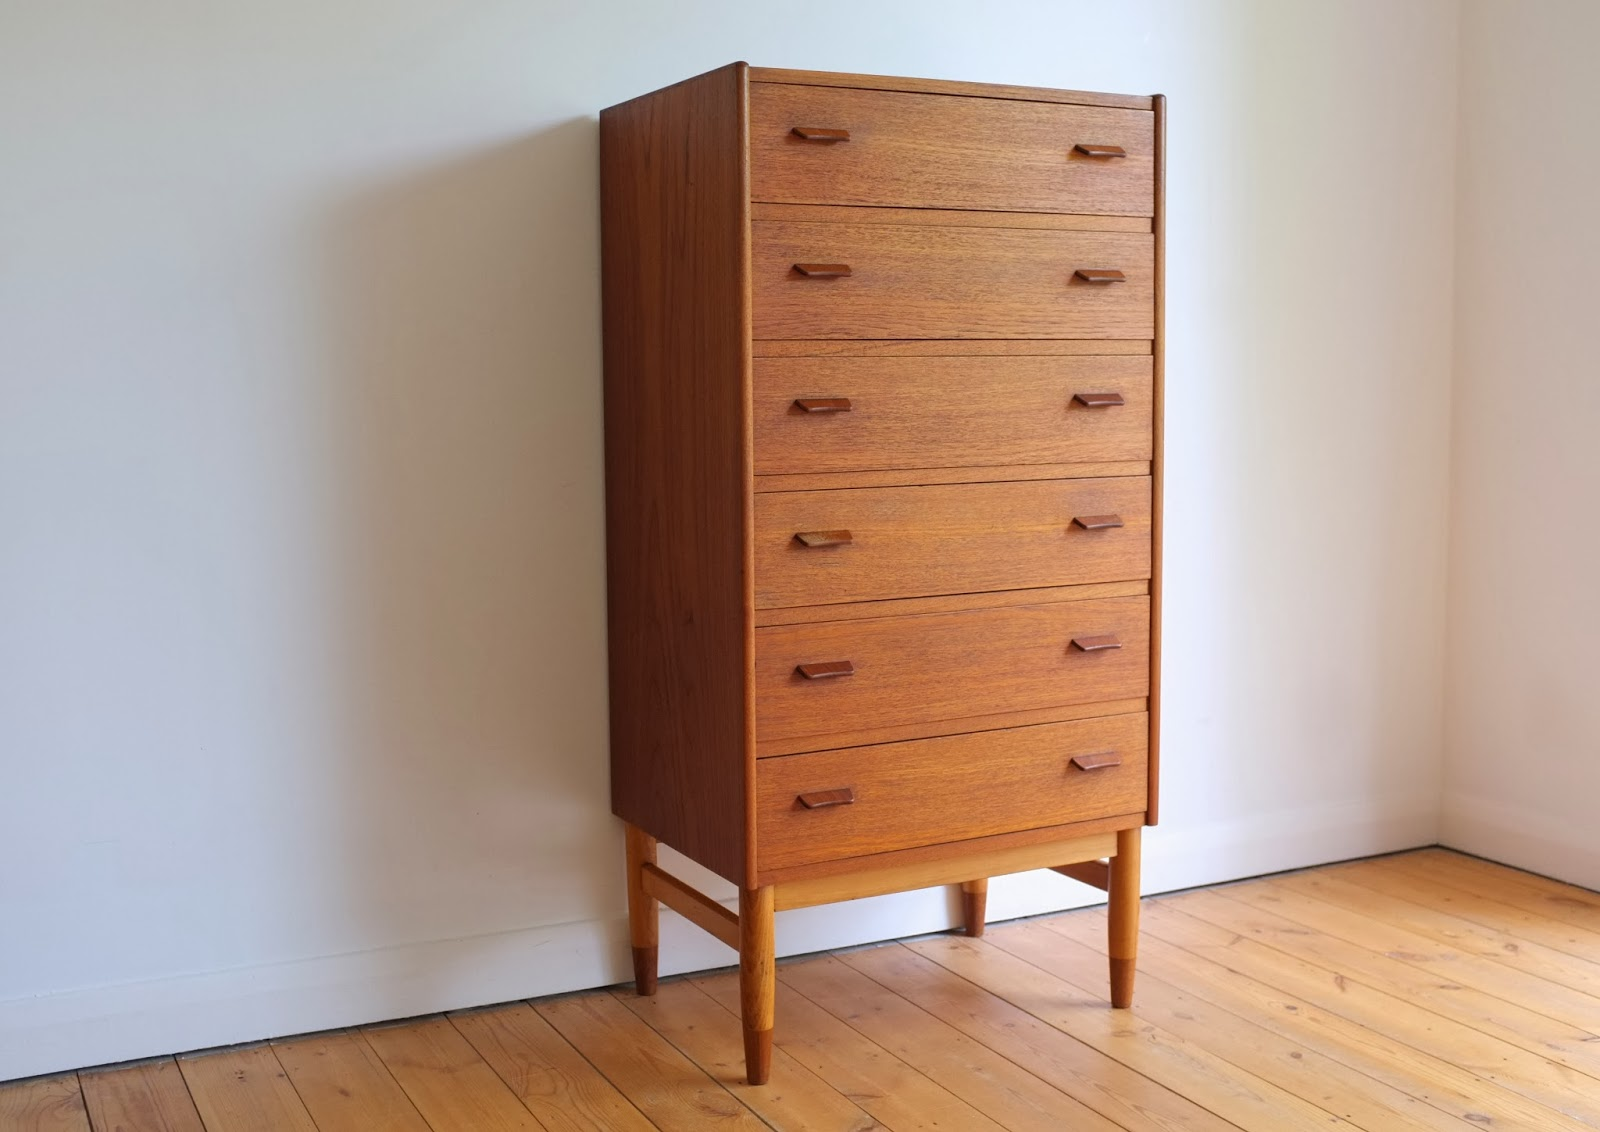 Teak Tallboy Chest Of Drawers Designed By Carl Aage Skov For Munch